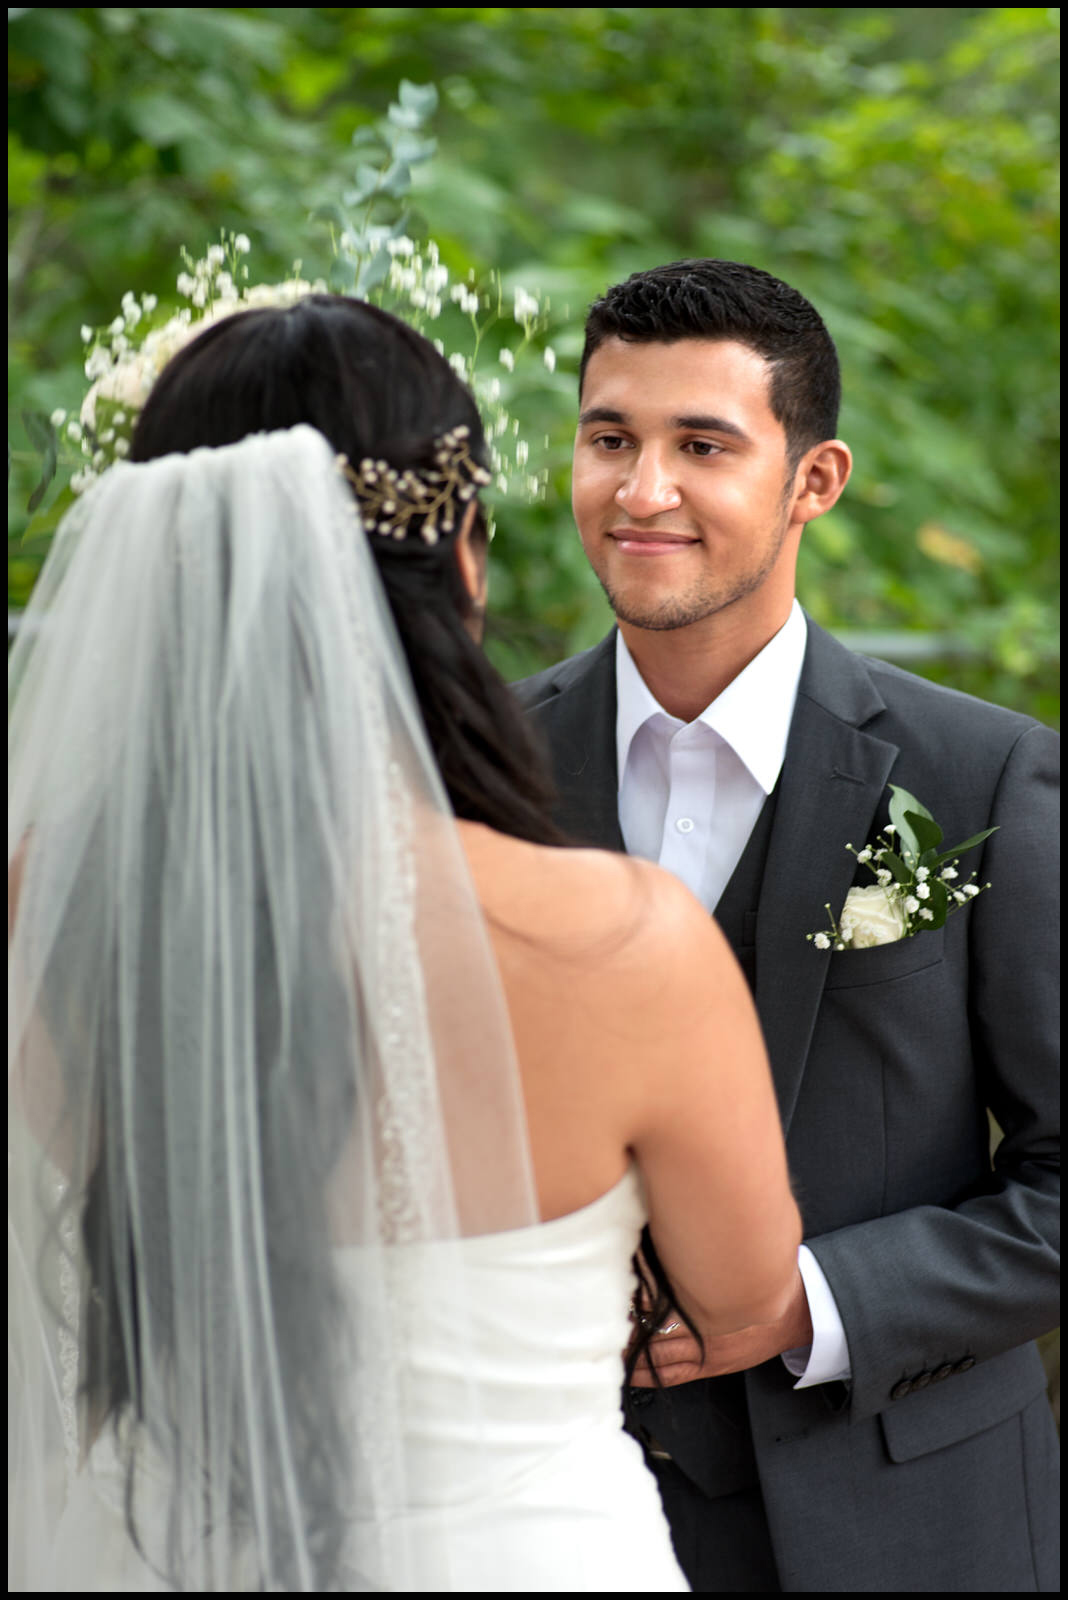 Emotional Groom at the Alter